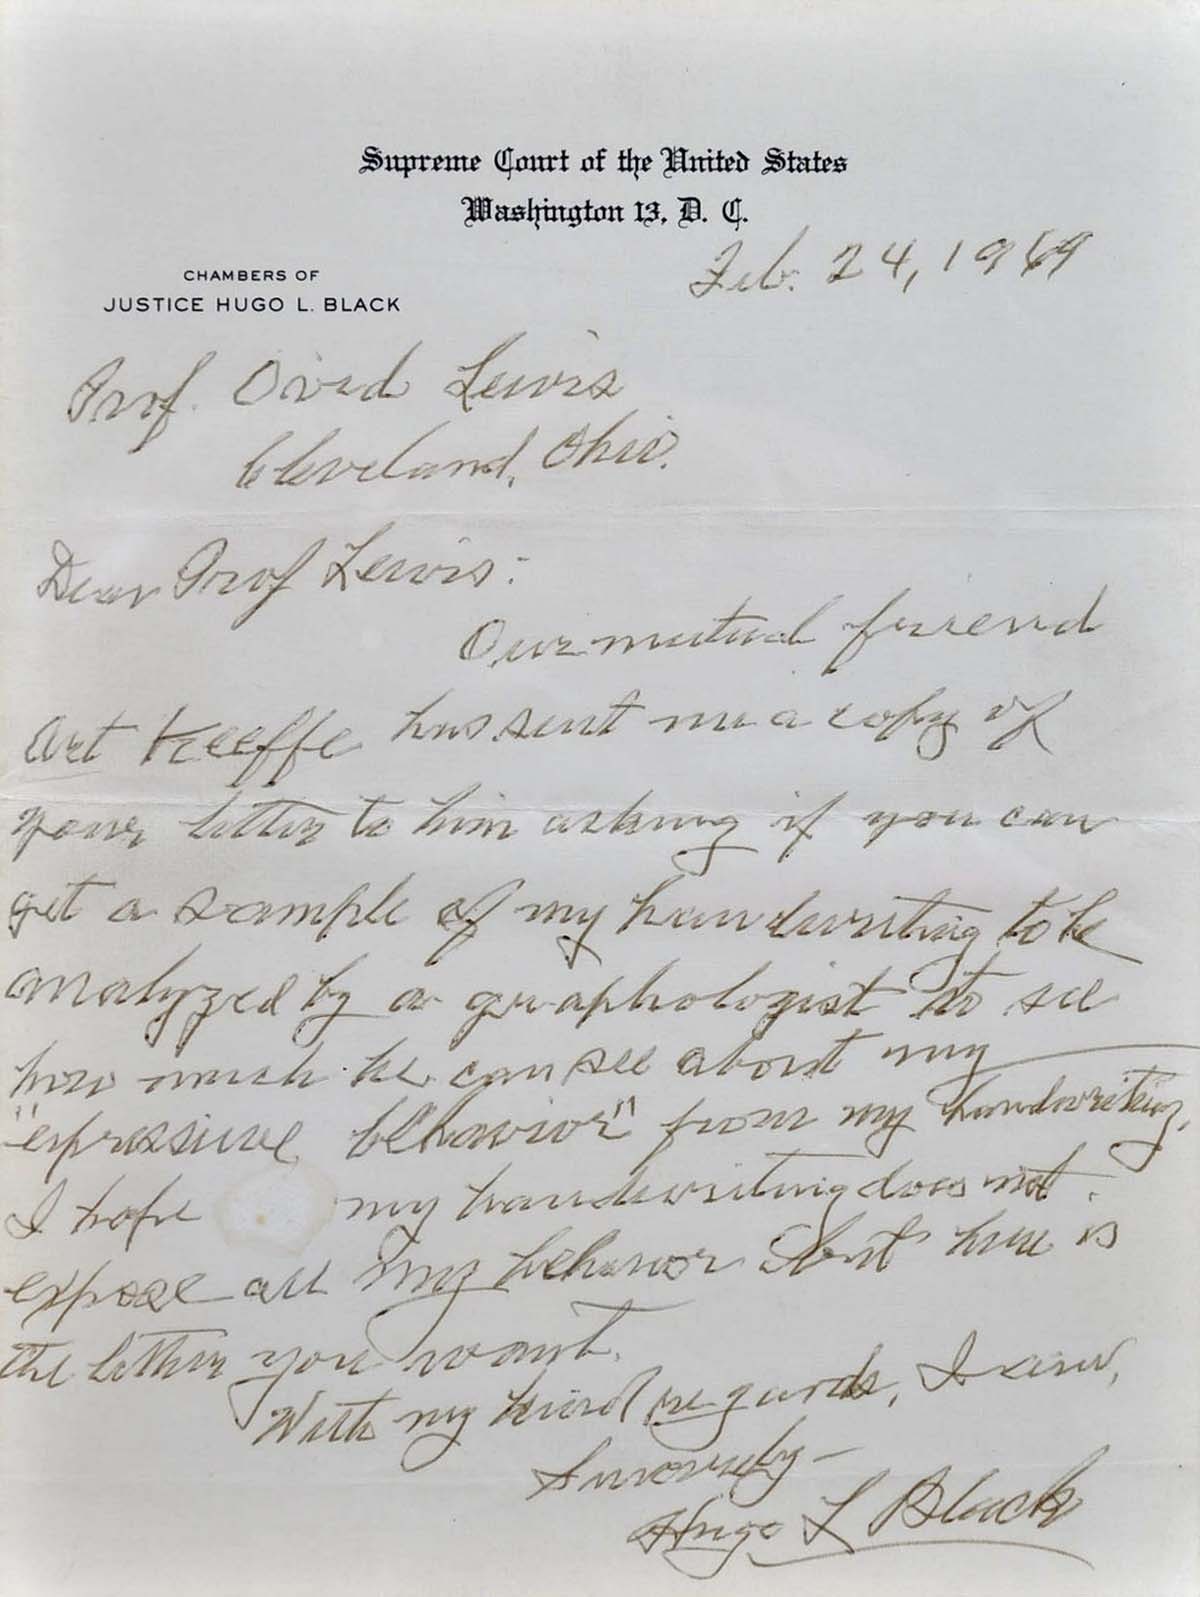 LETTER HANDWRITTEN AND SIGNED BY SUPREME COURT JUSTICE